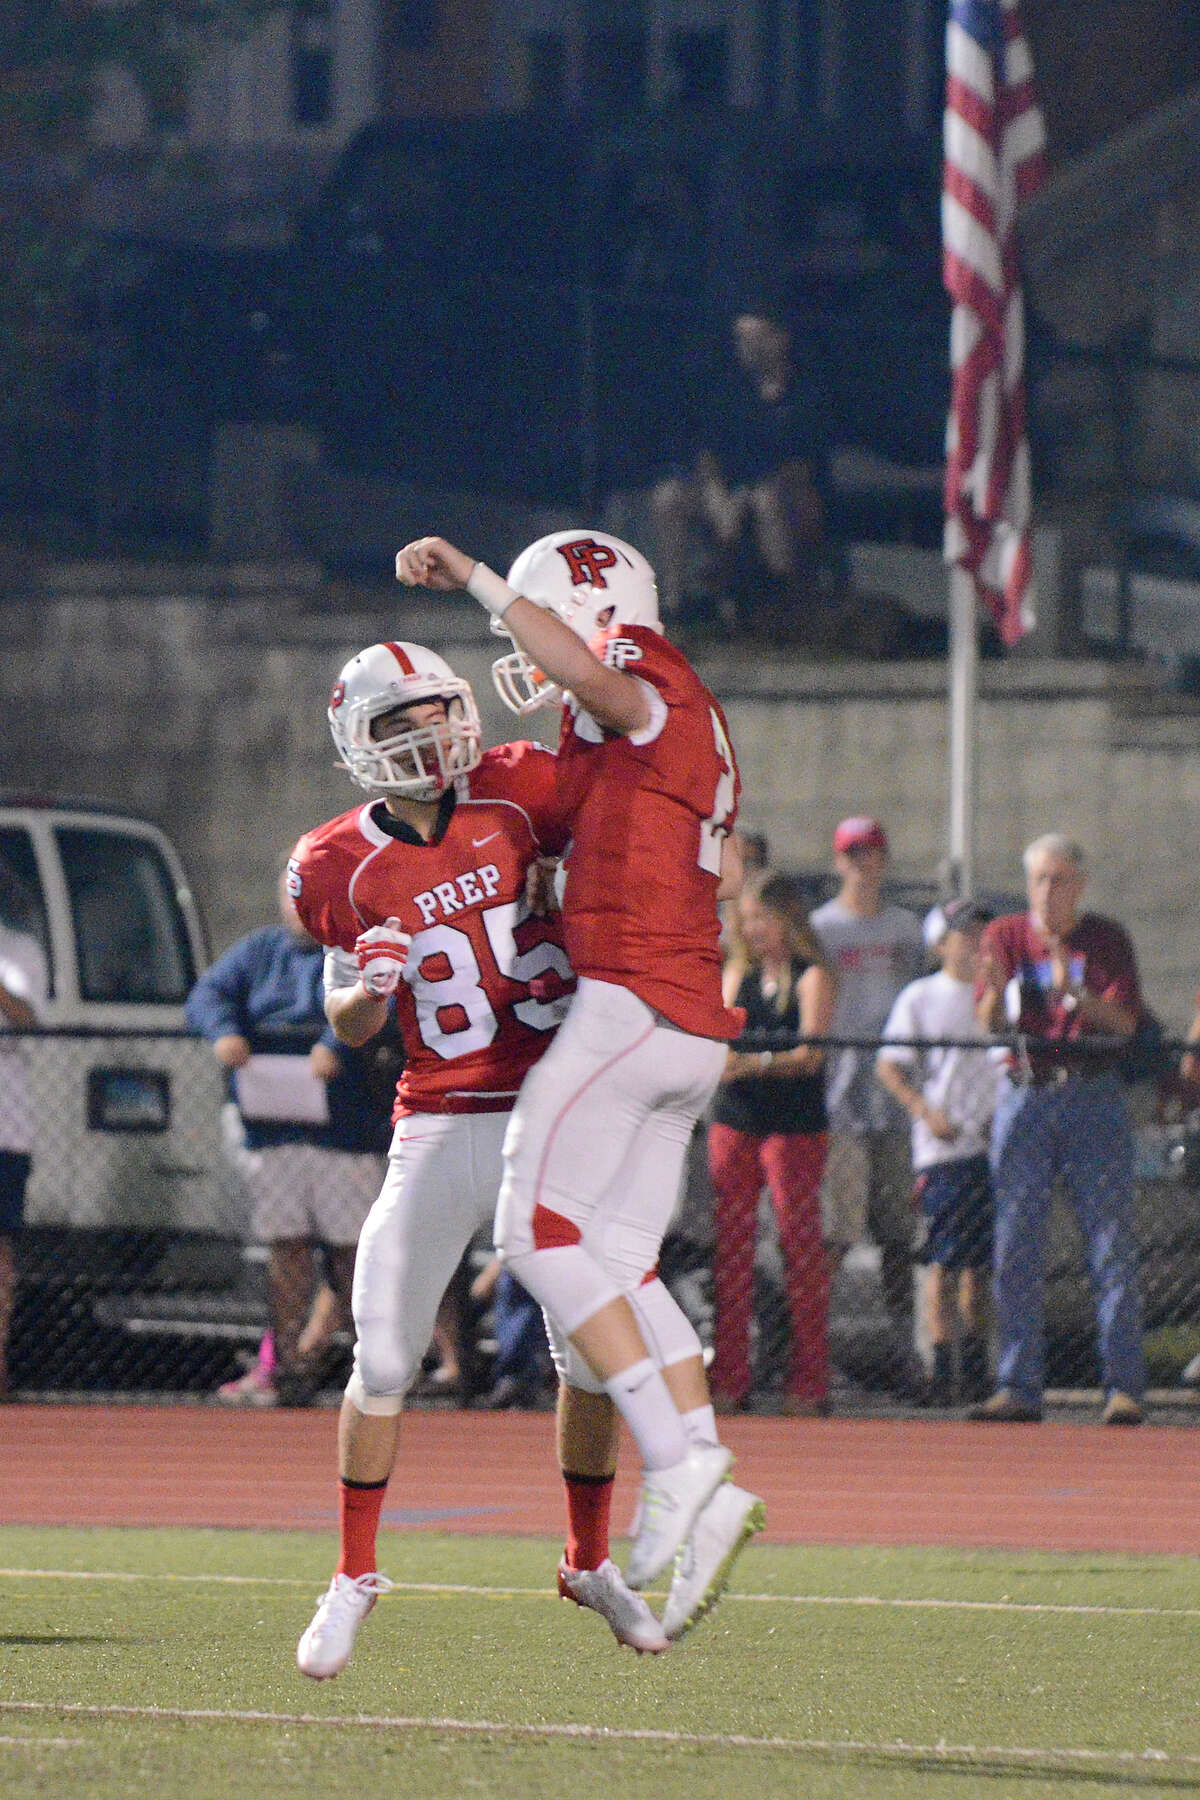 Prep's Ben Kelly congratulates teammate Colton Smith on a first half touchdown as Stamford High School challenges Fairfield Prep at Fairfield Ludlowe High School in high school varsity football action on Thurs. Sept. 11, 2014.